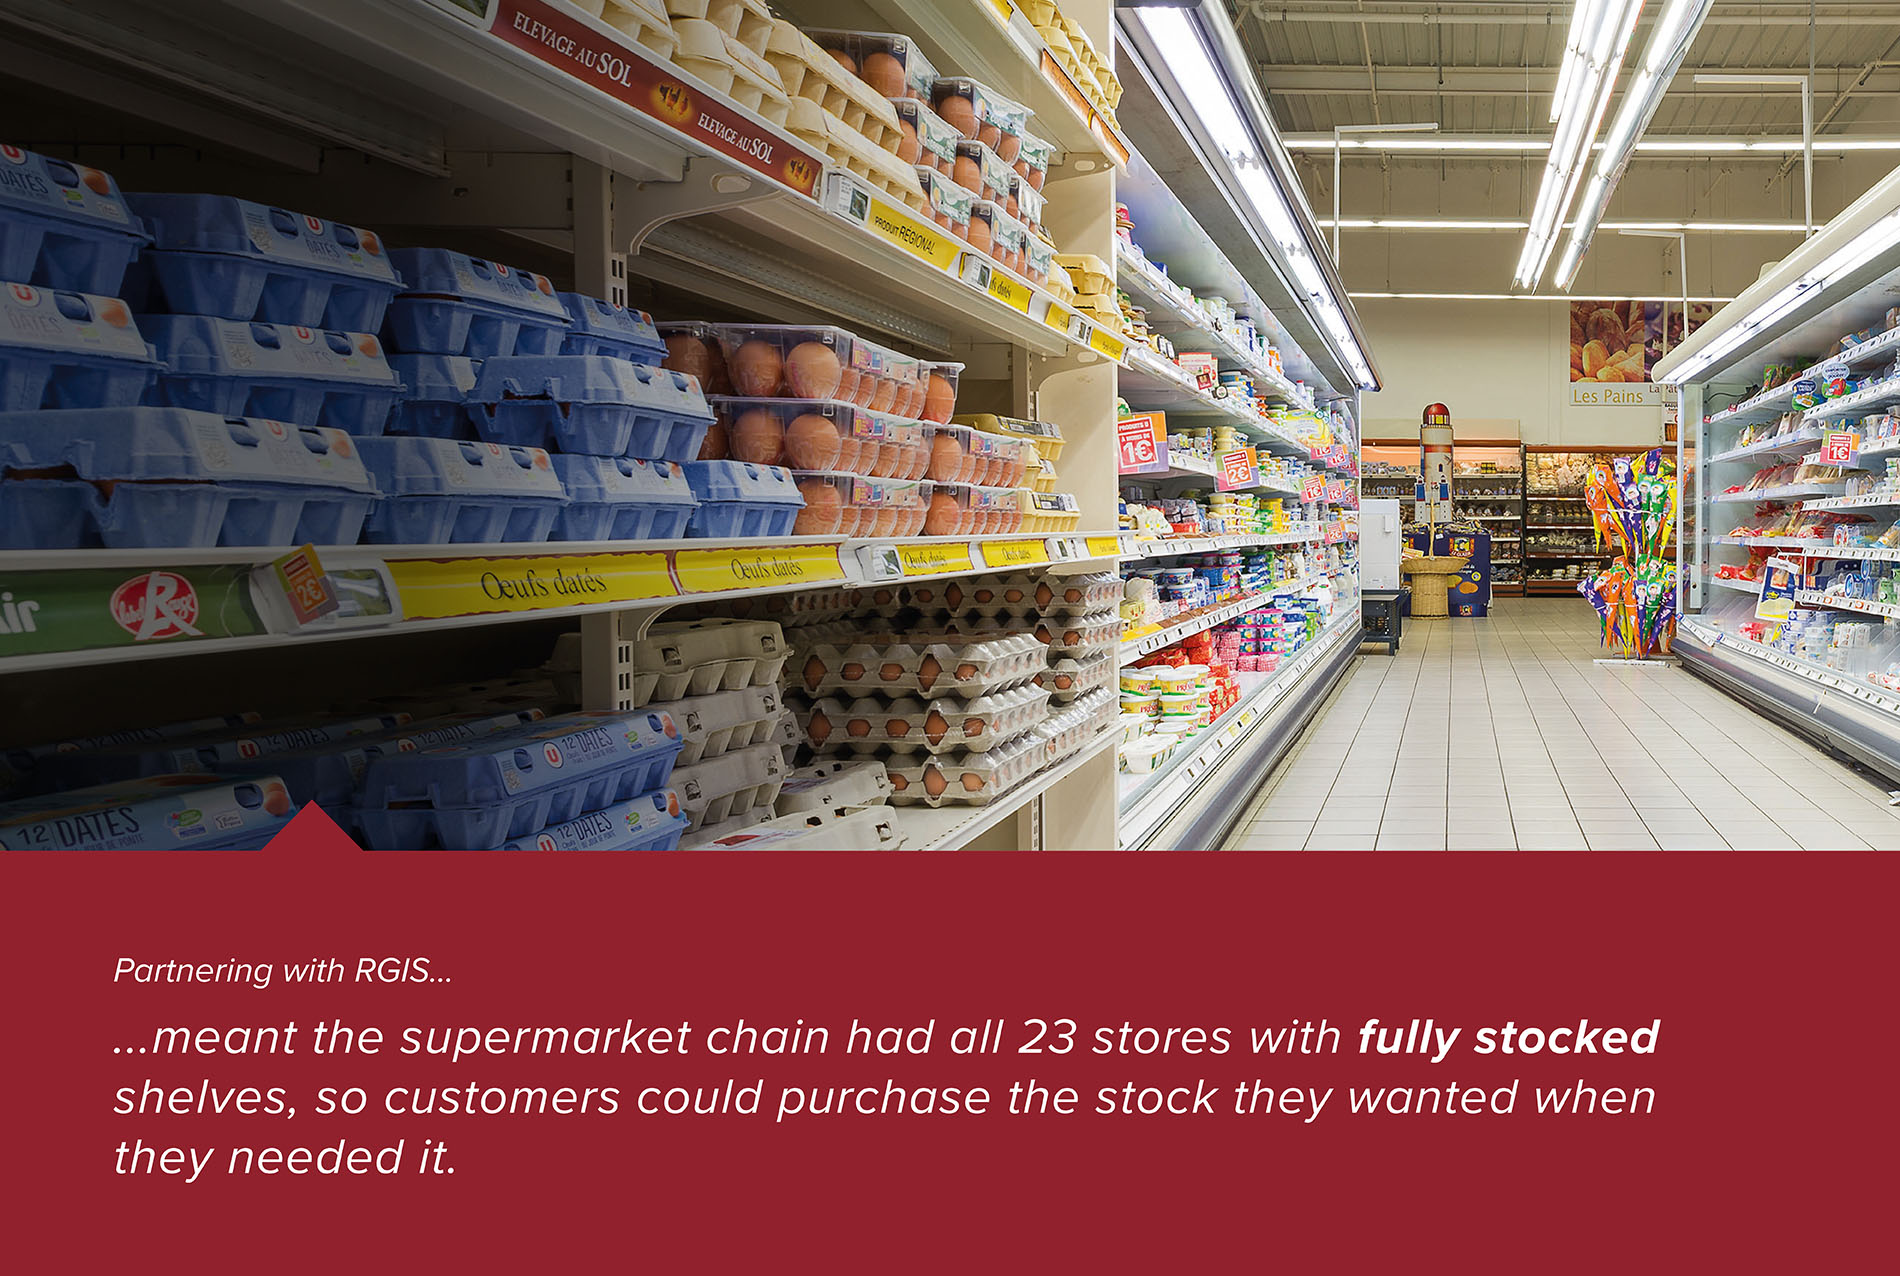 RGIS Case Study of Stock Replenishment